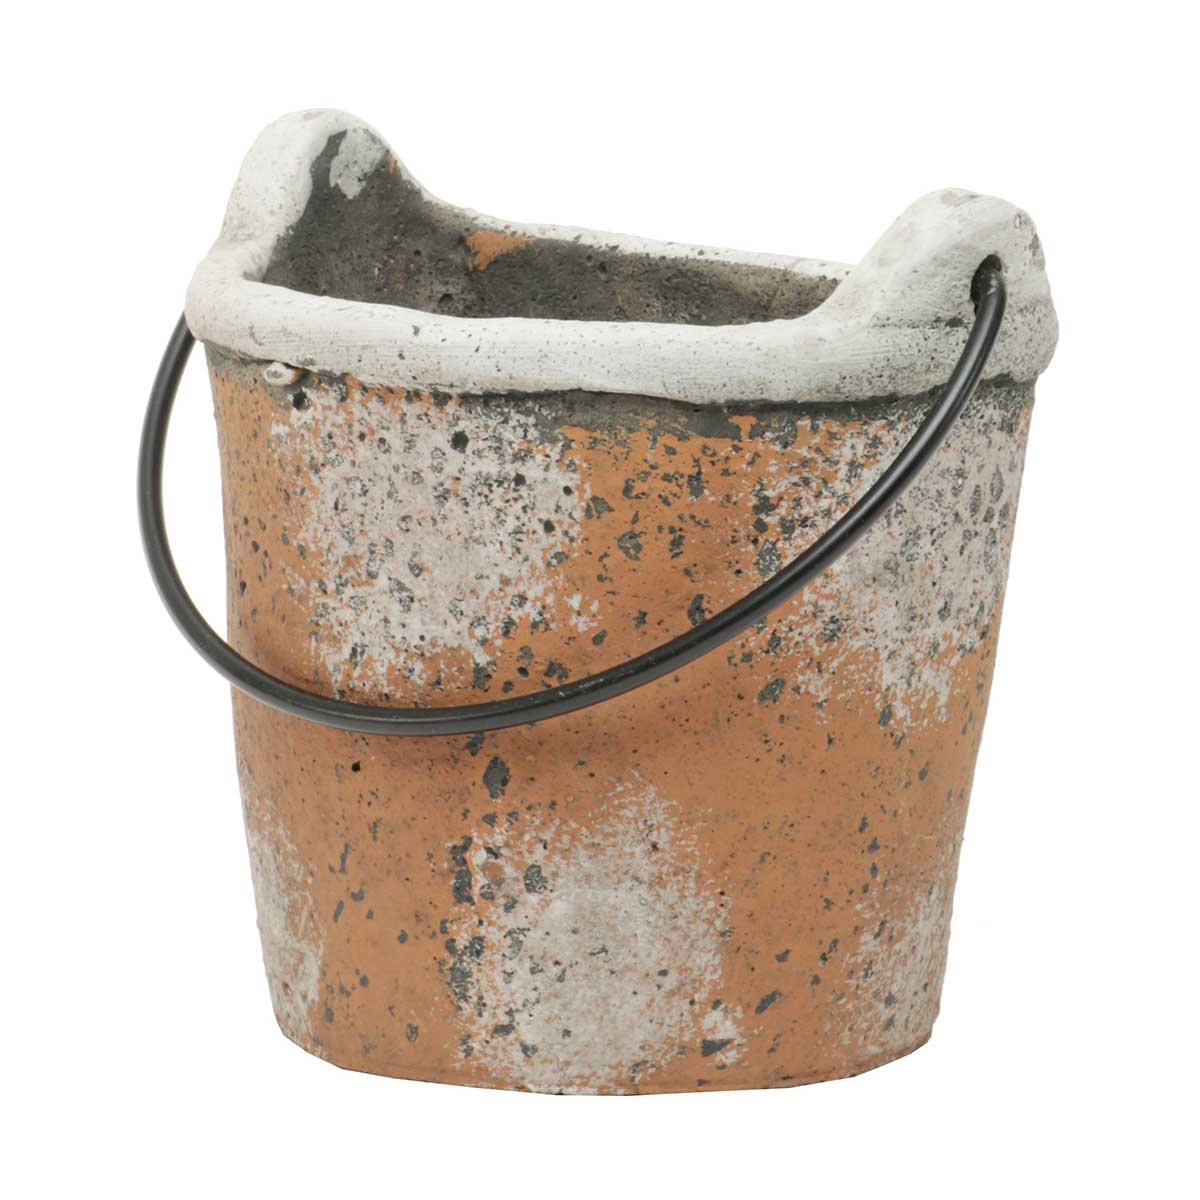 "WALL BUCKET WITH HANDLE 4.5""X3.5"" CONCRETE"